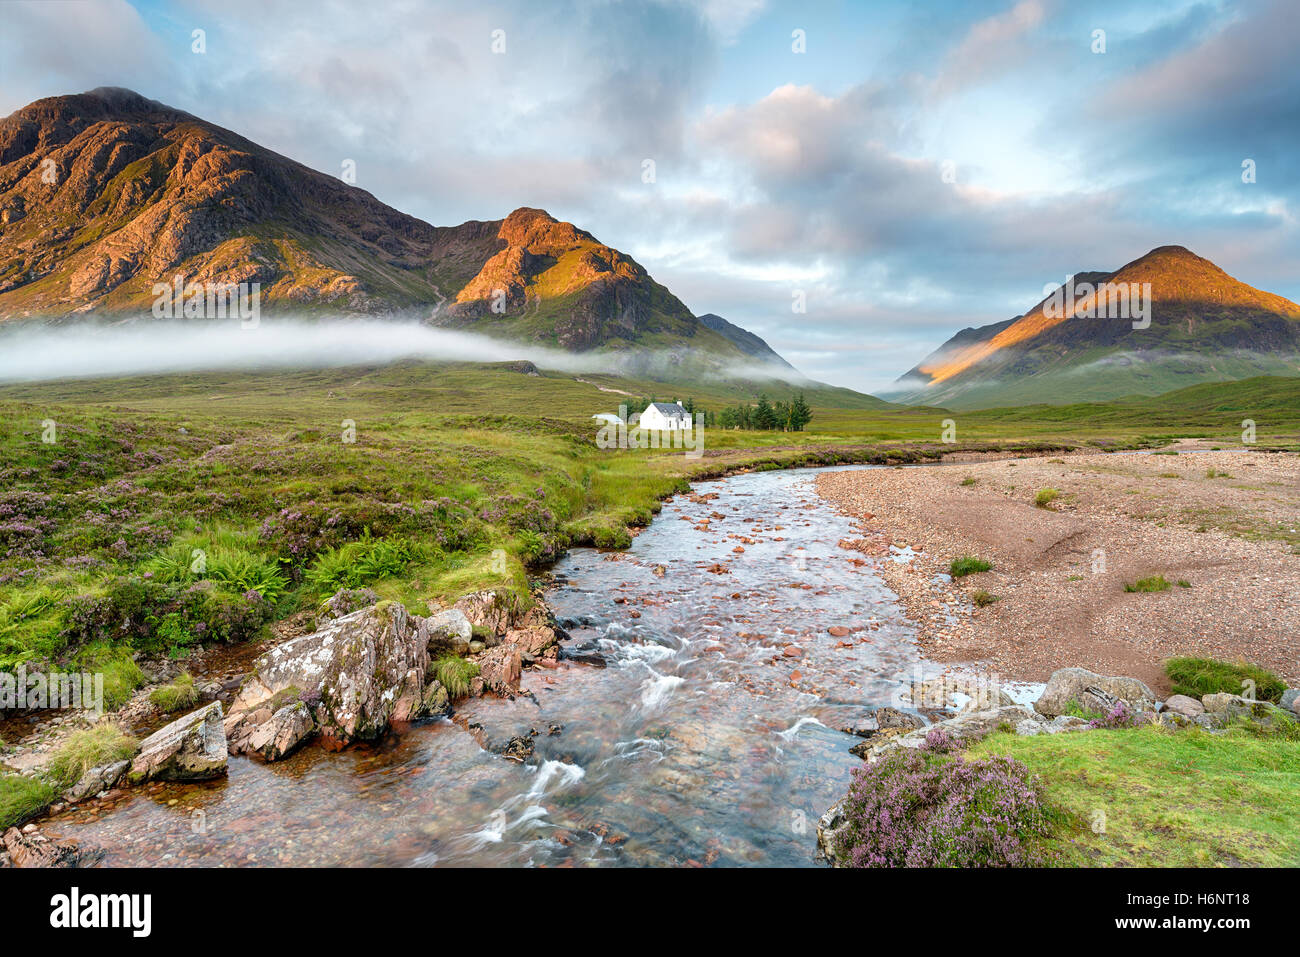 The rising sun lighting the mountain peaks at Glencoe in the Highlands of Scotland - Stock Image